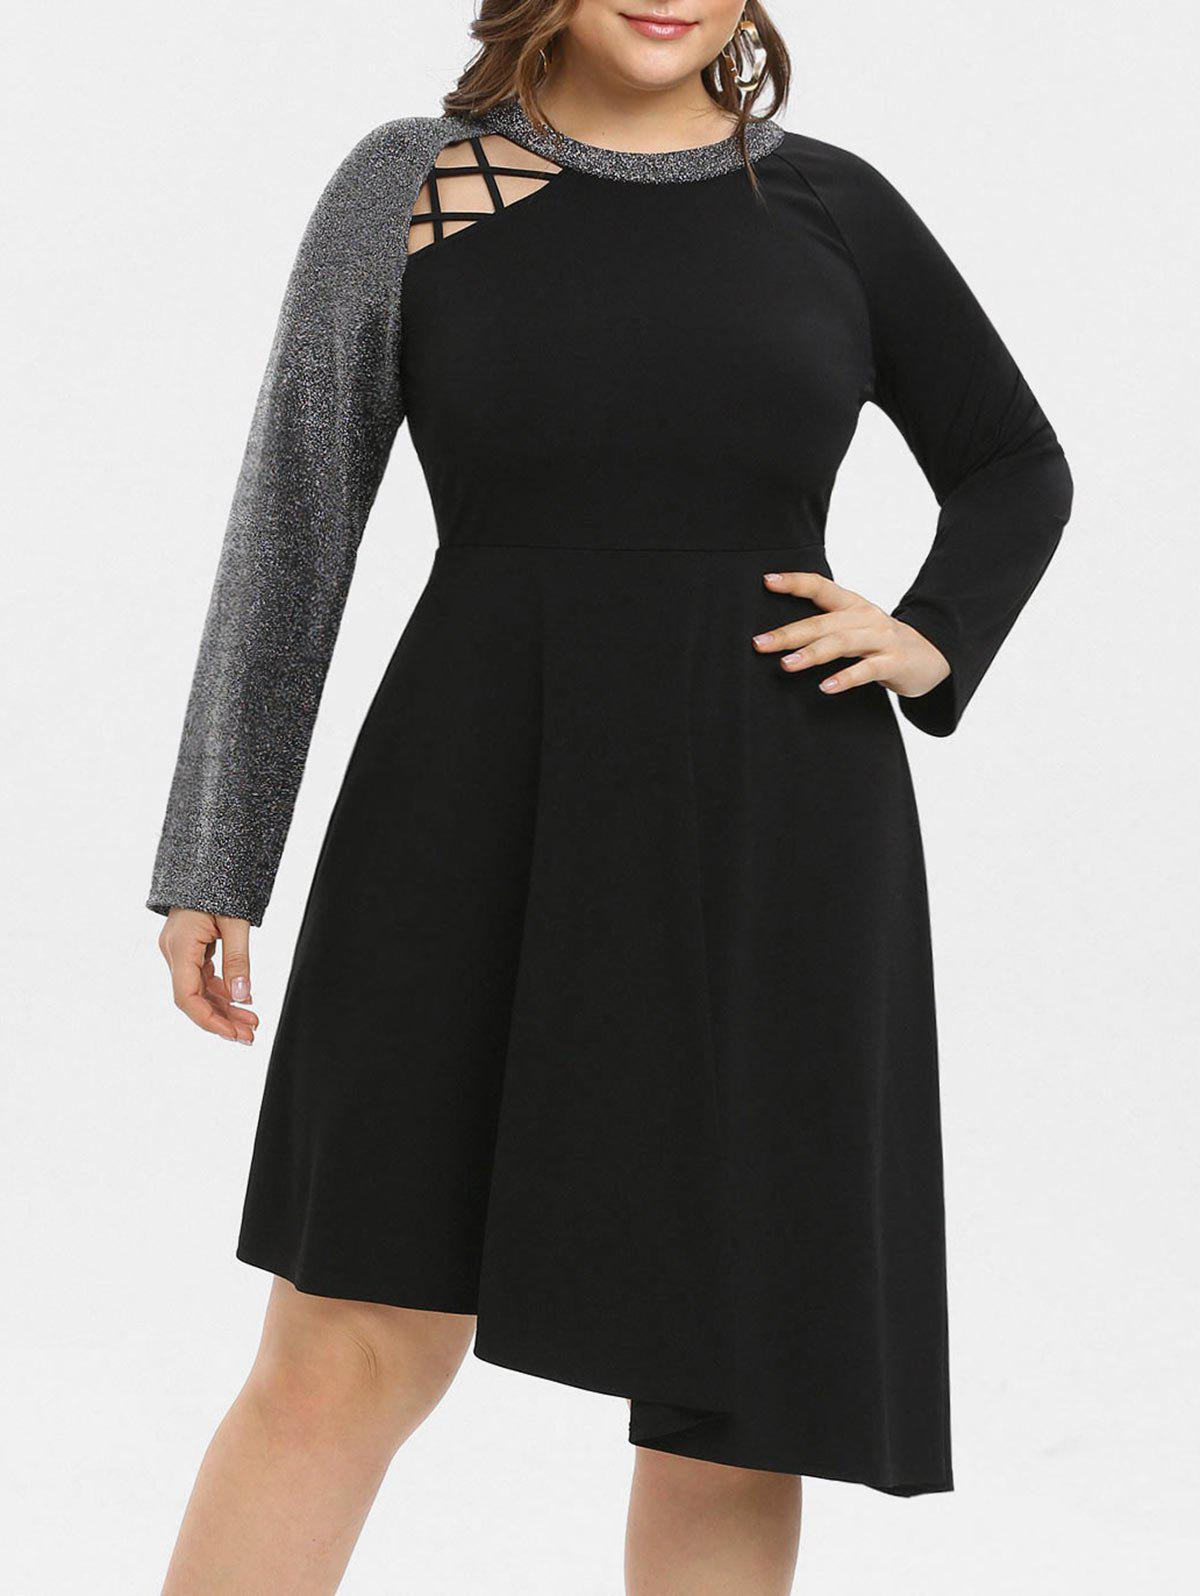 29% OFF] Plus Size Asymmetrical Sequined Midi Dress | Rosegal